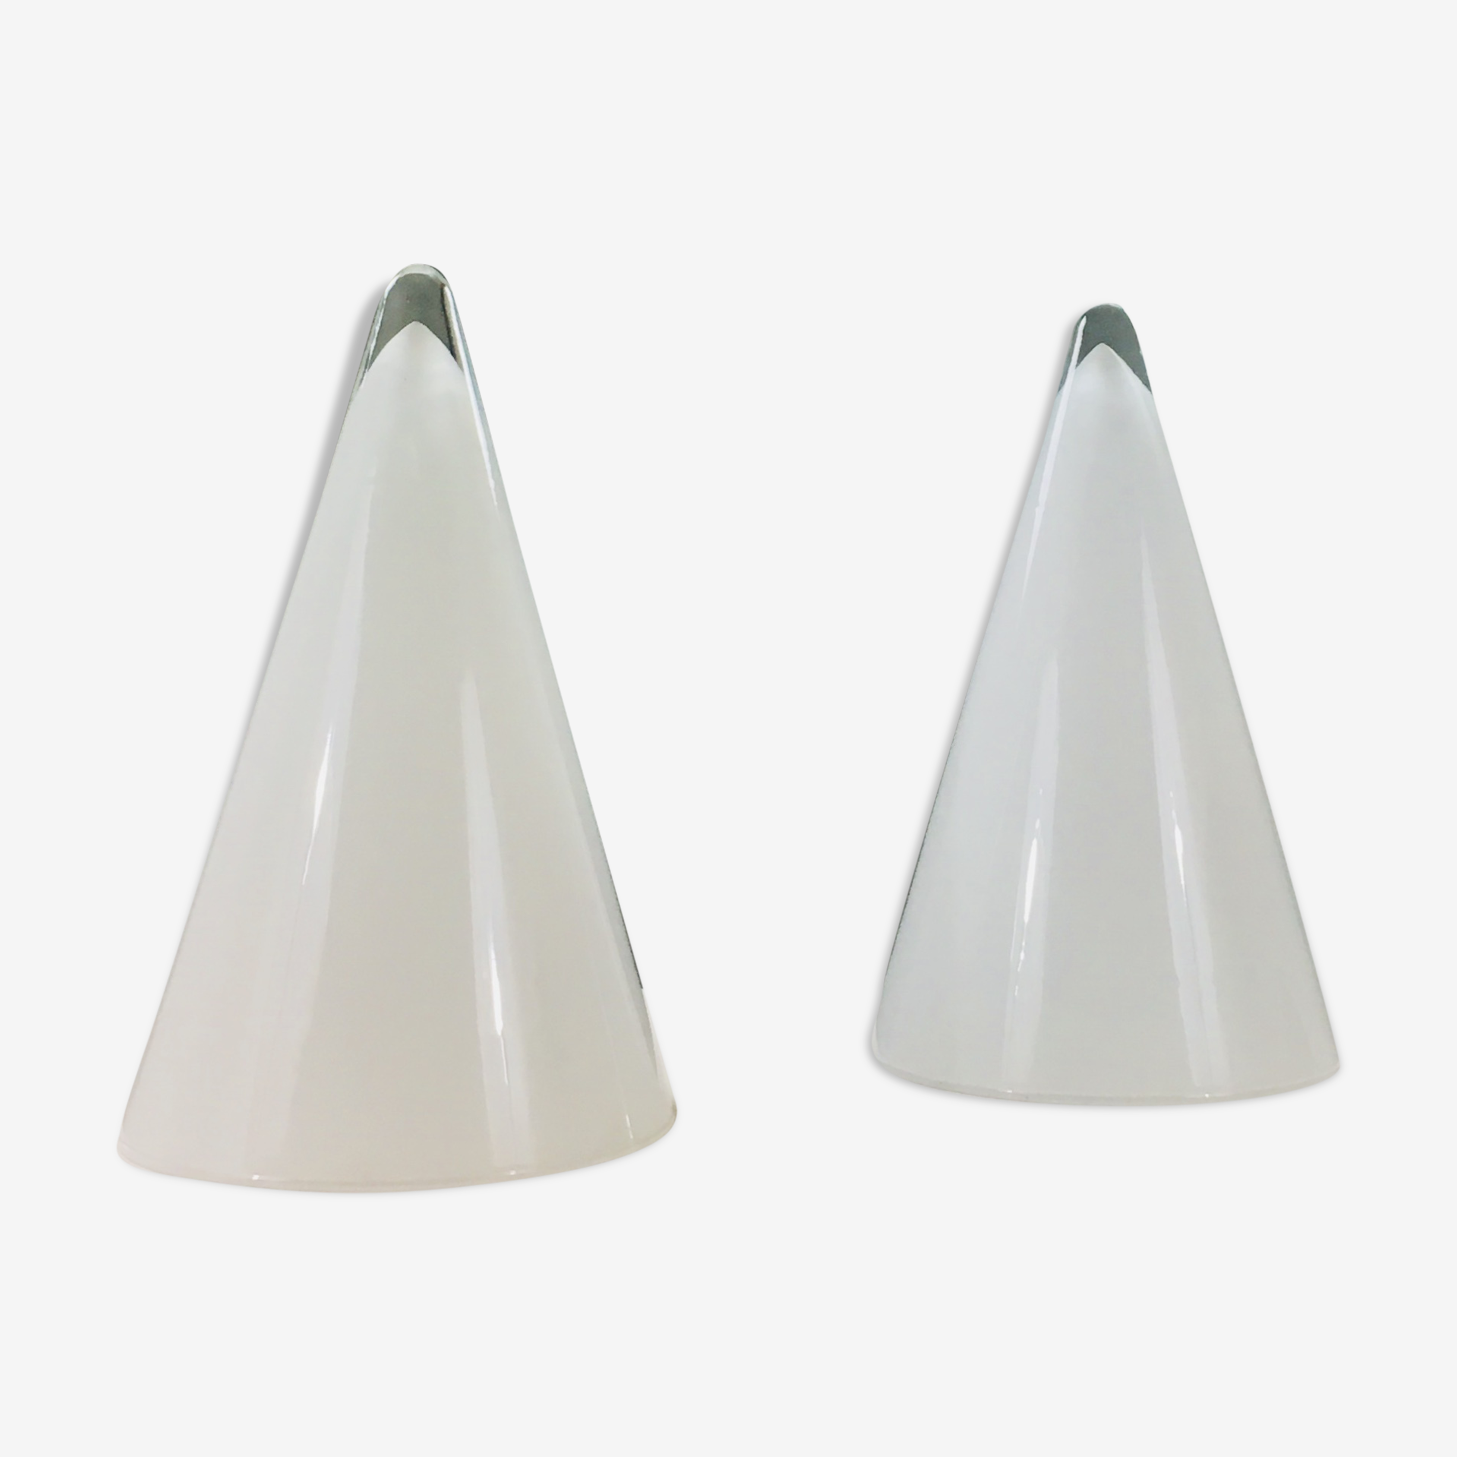 Pair of conical white and translucent glass lamps